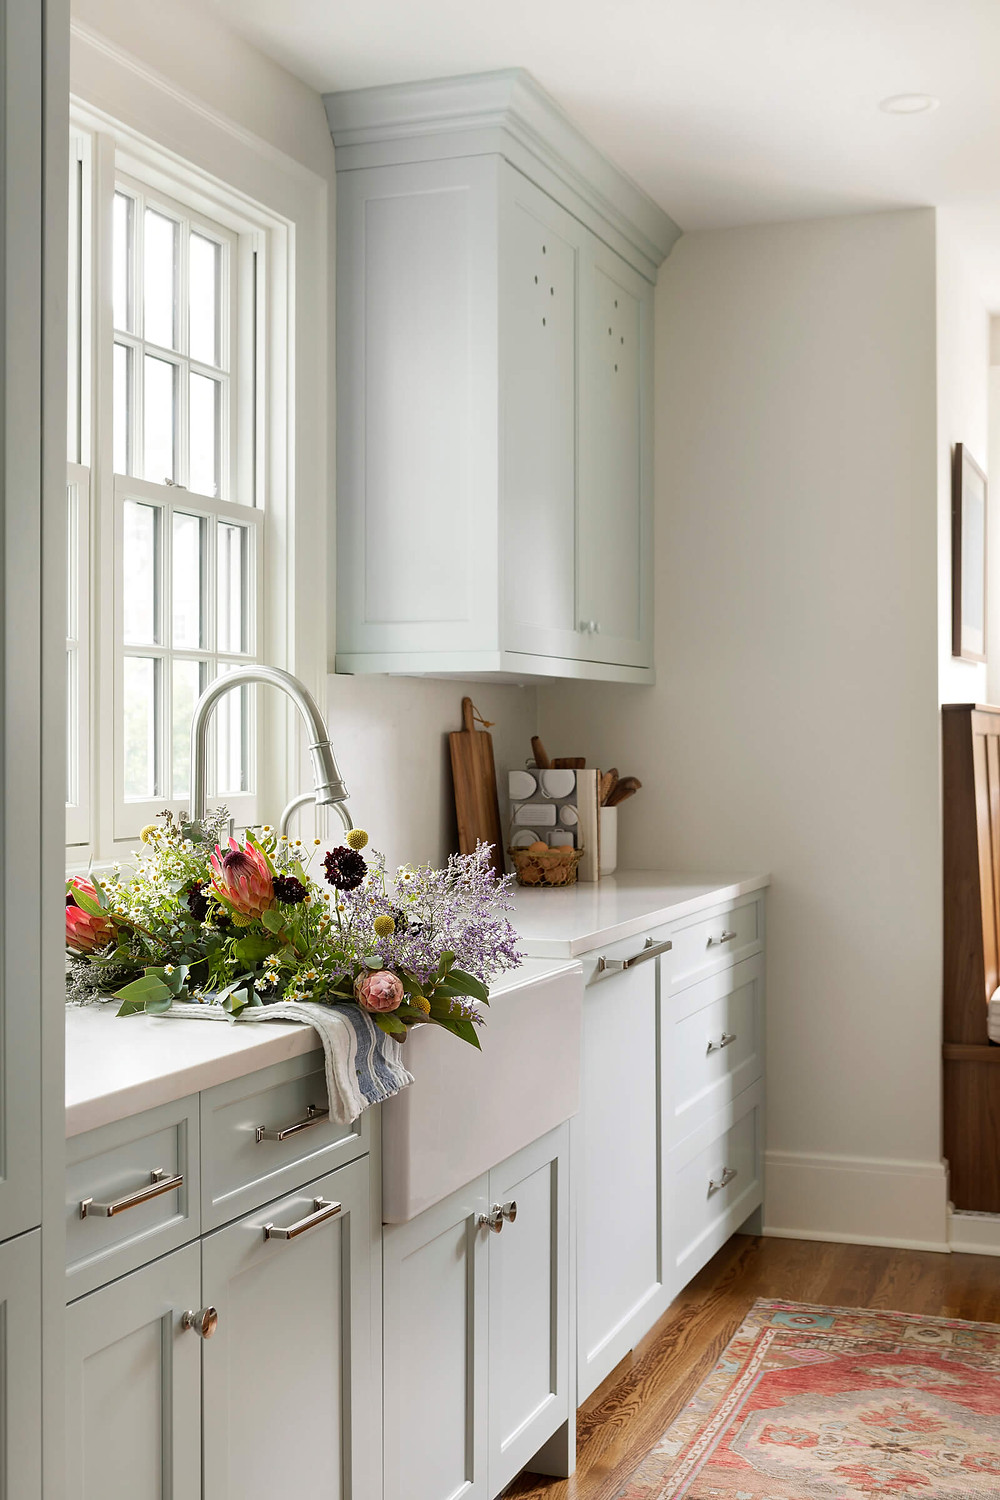 Modern charming English Colonial inspired kitchen with apron front sink filled with wildflowers, charming custom blue cabinetry and polished nickel hardware